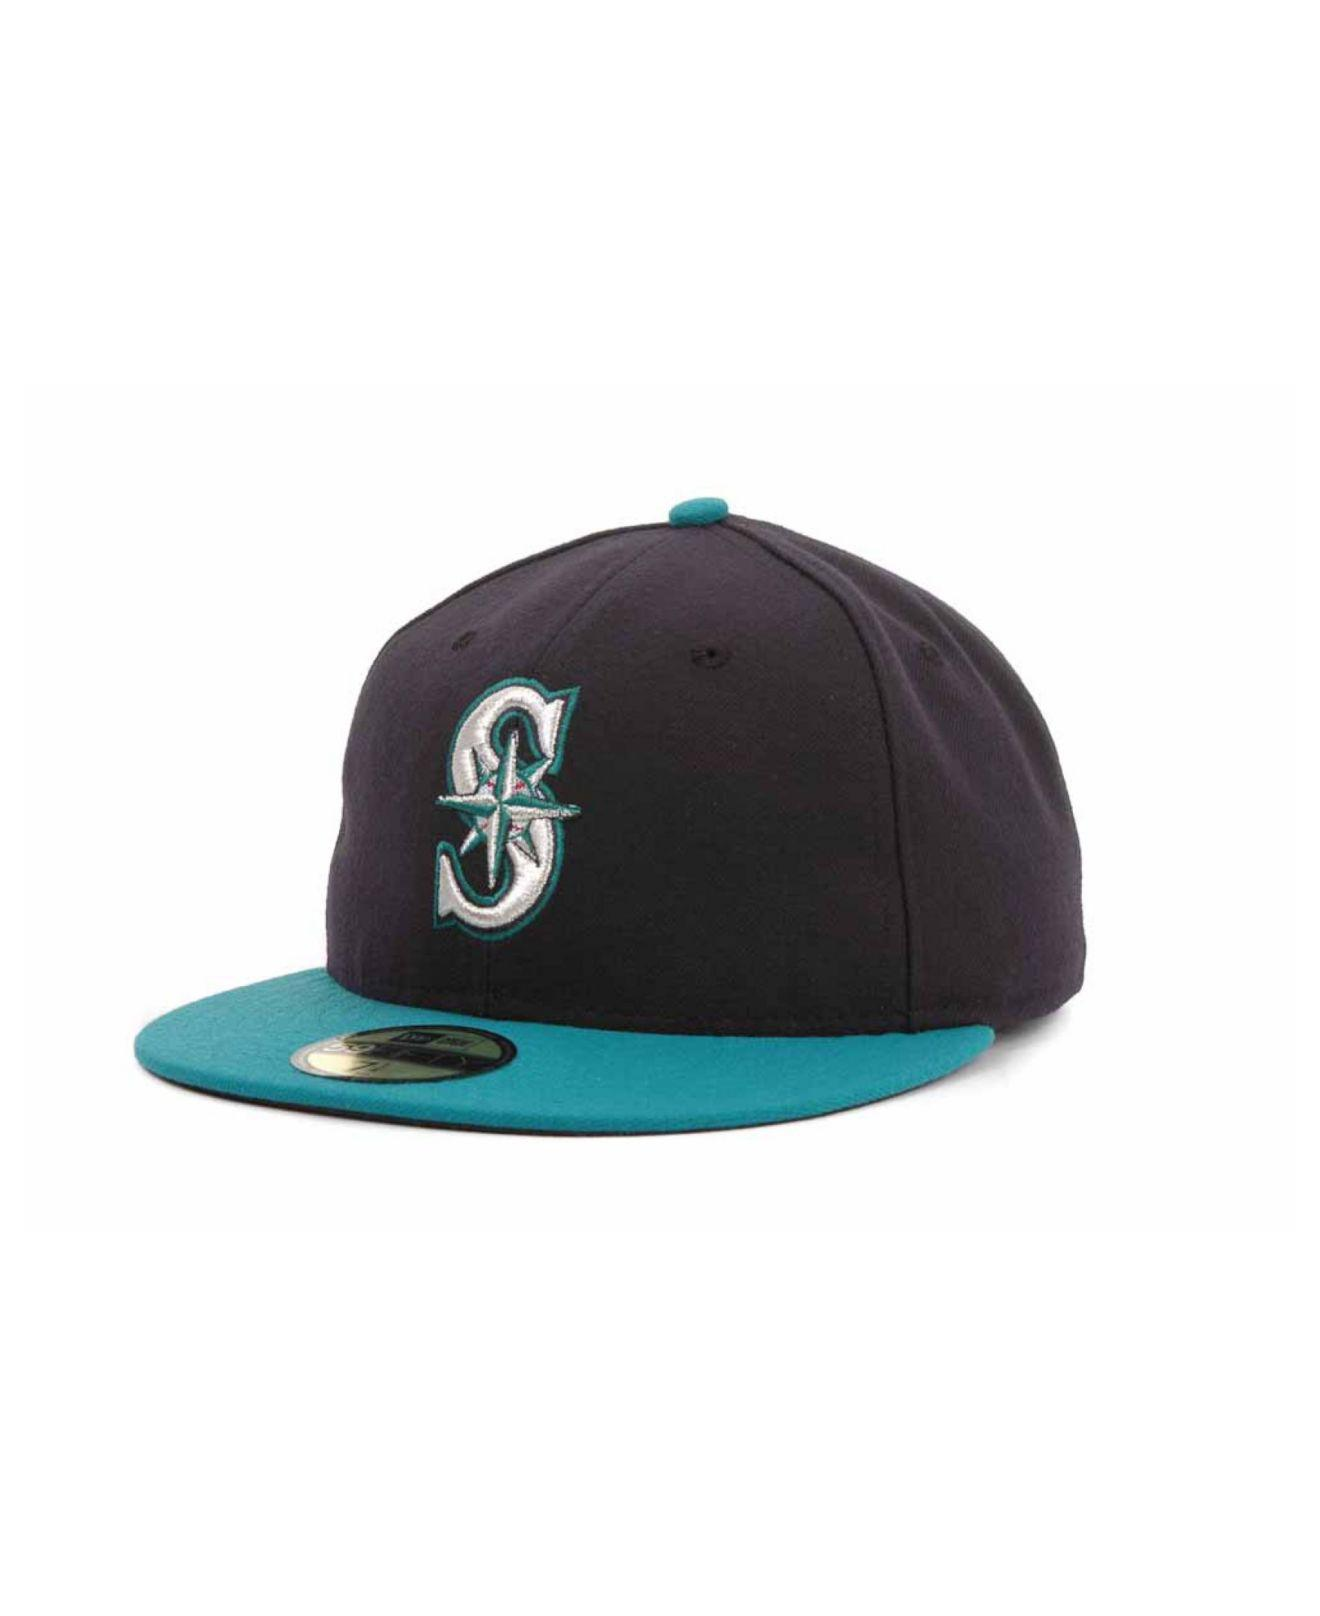 3a168673512 Lyst - Ktz Seattle Mariners Mlb Authentic Collection 59fifty Cap in ...